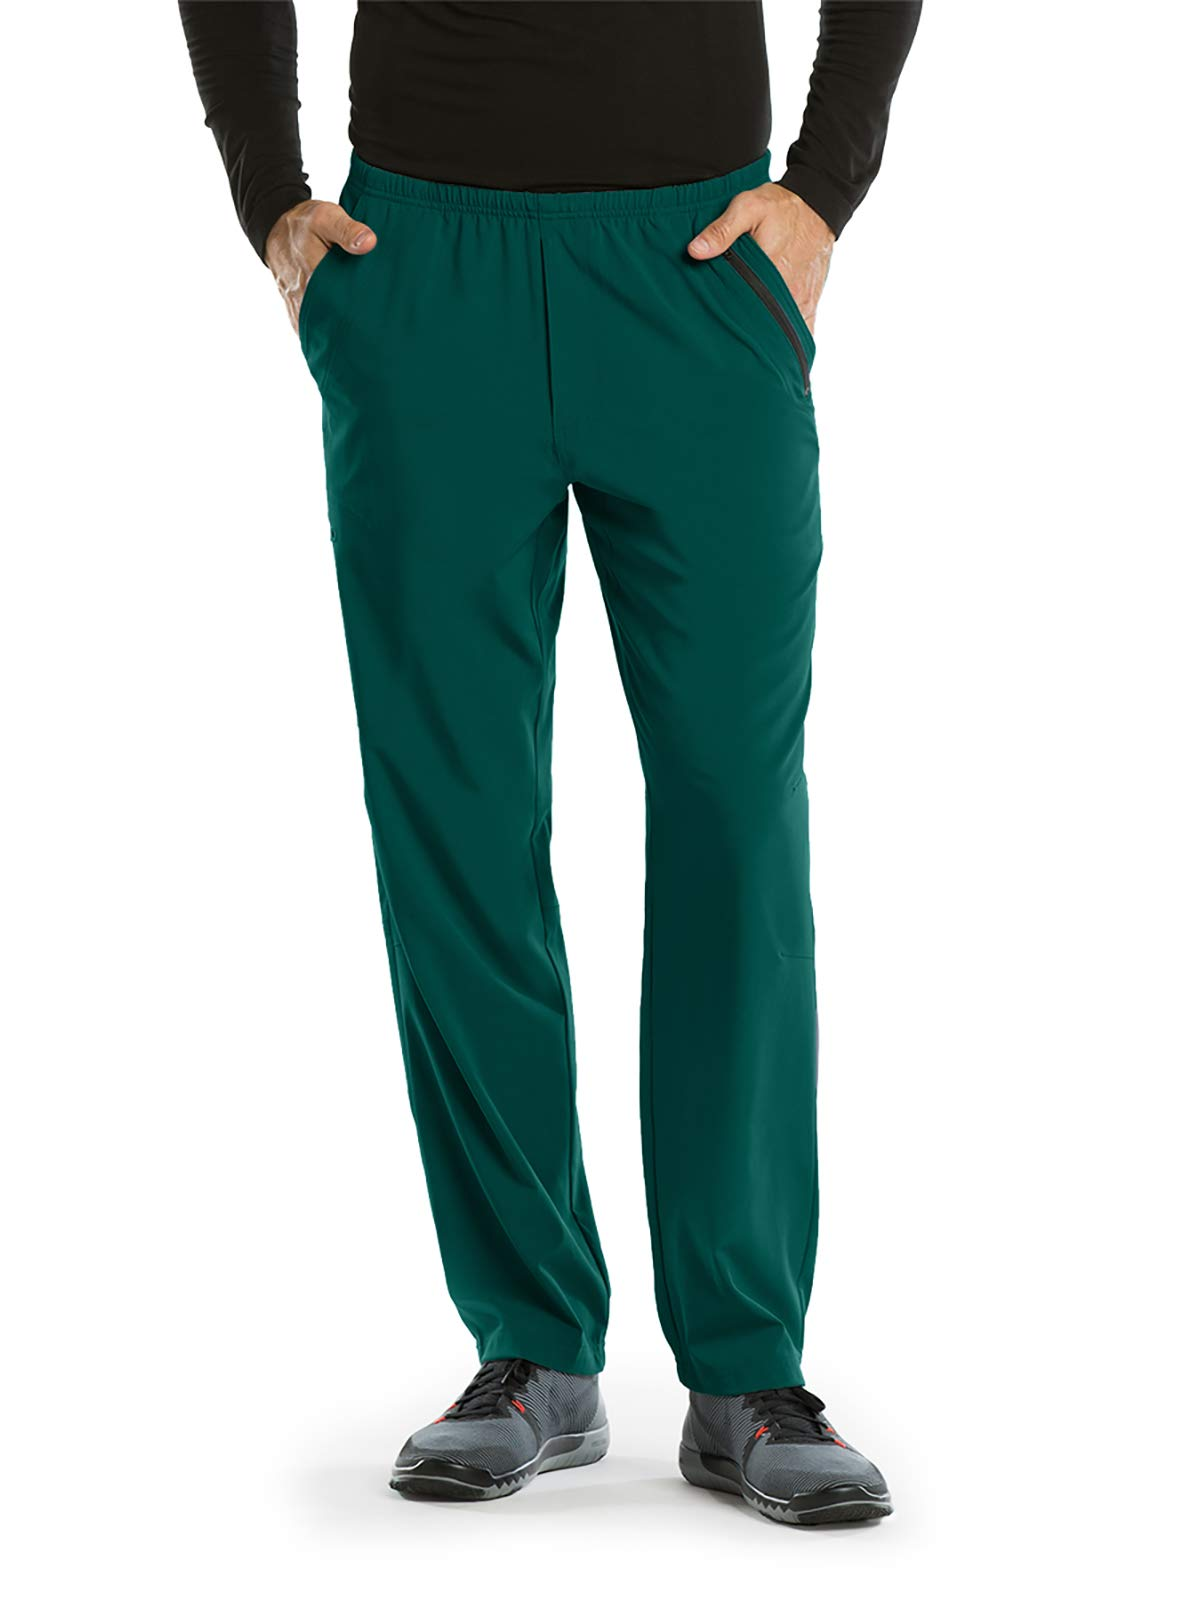 Barco One 0217 Men's 7 Pocket Athletic Jog Scrub Pant Hunter Green XS by Barco